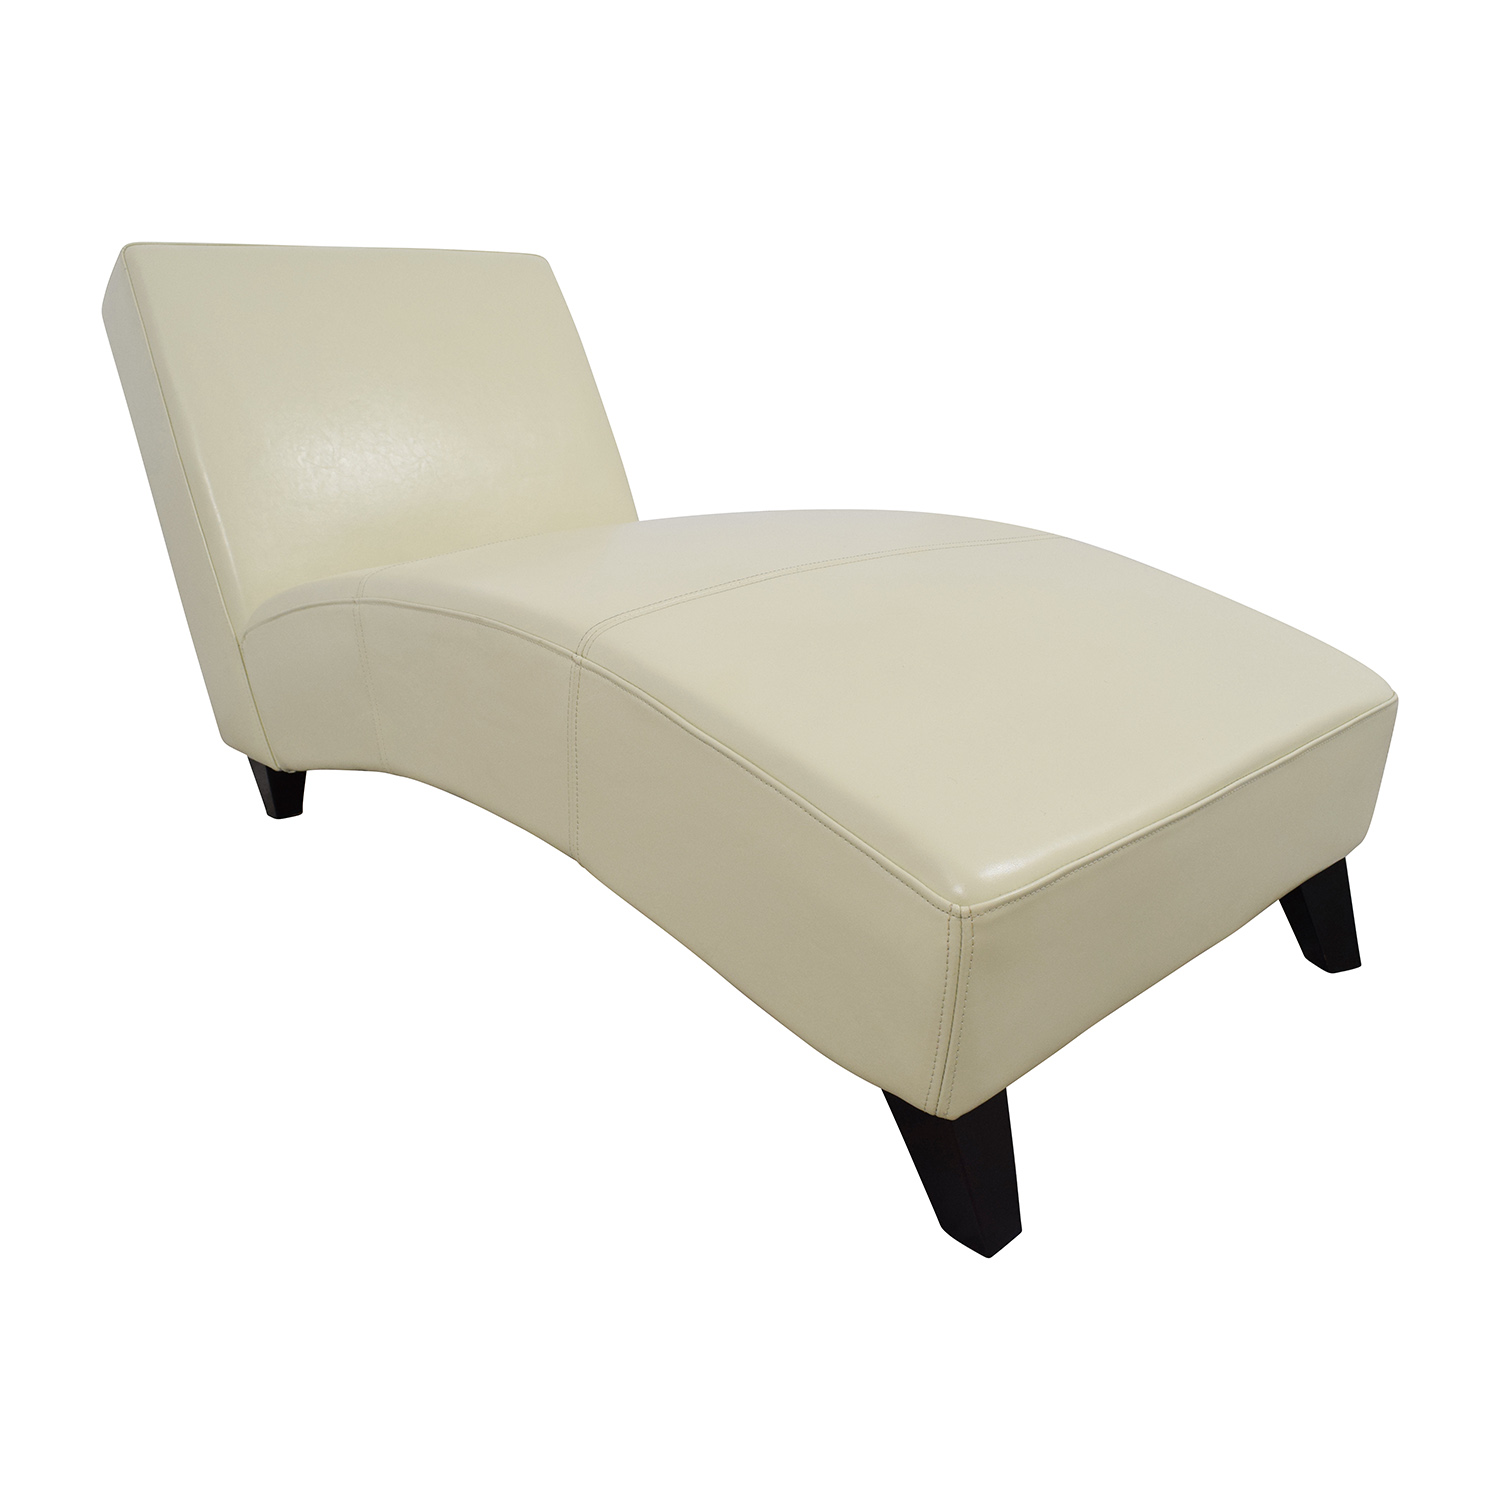 Wayfair Wayfair White Leather Chaise second hand